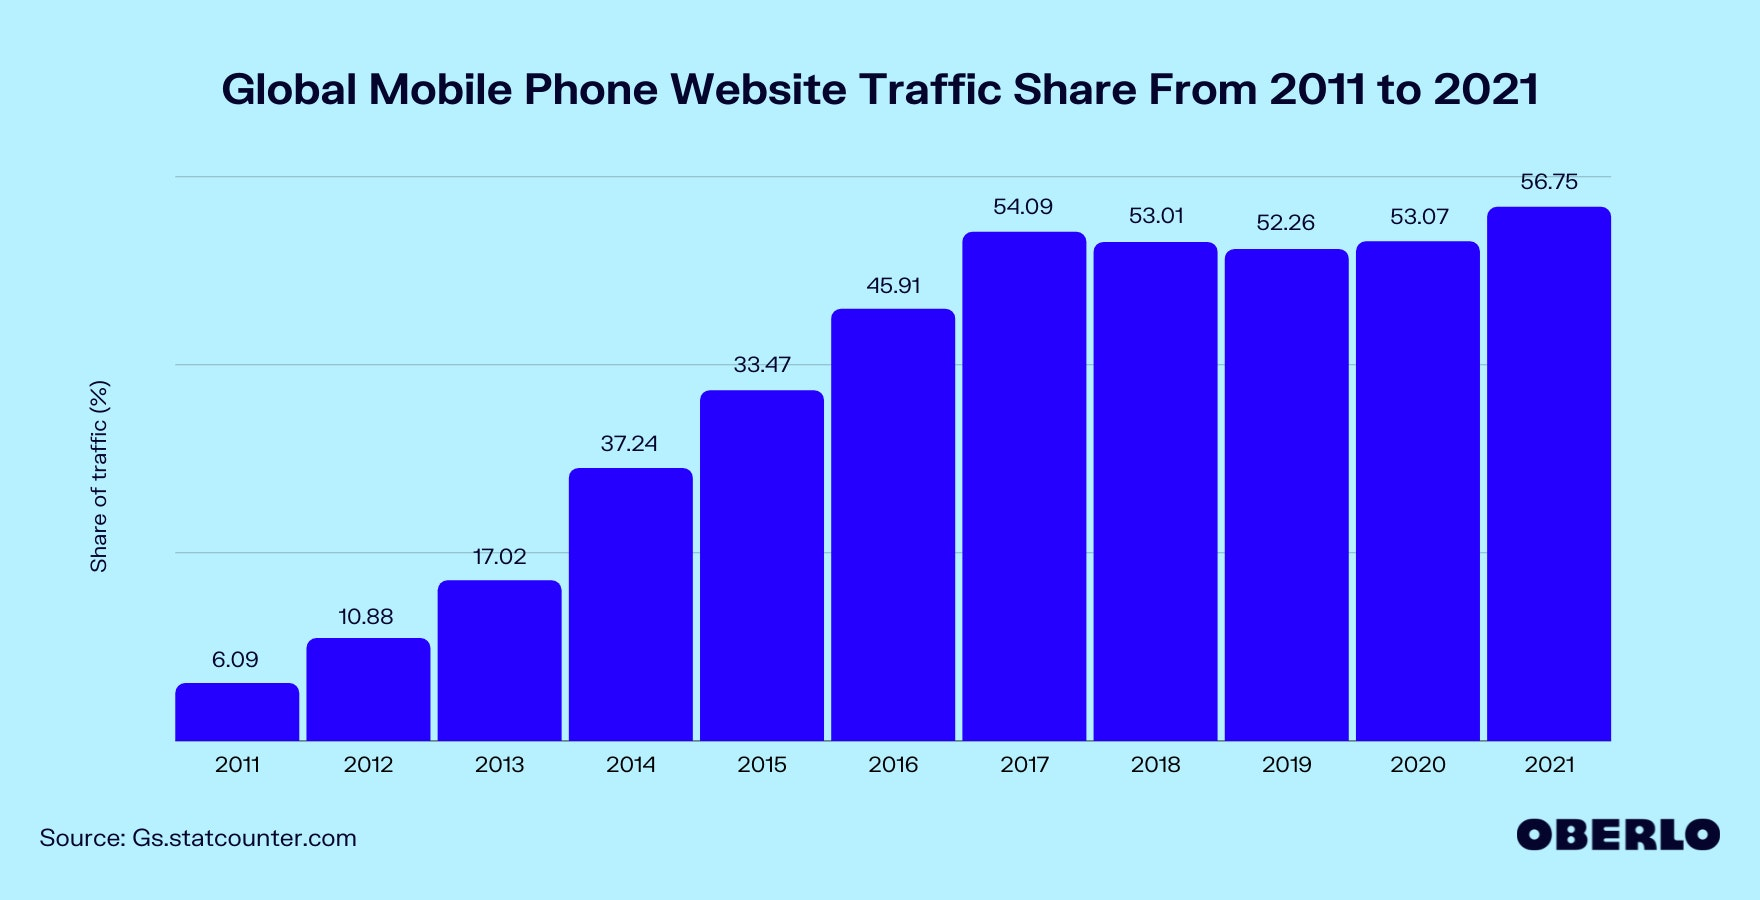 Chart of Global Mobile Phone Website Traffic Share From 2011 to 2021